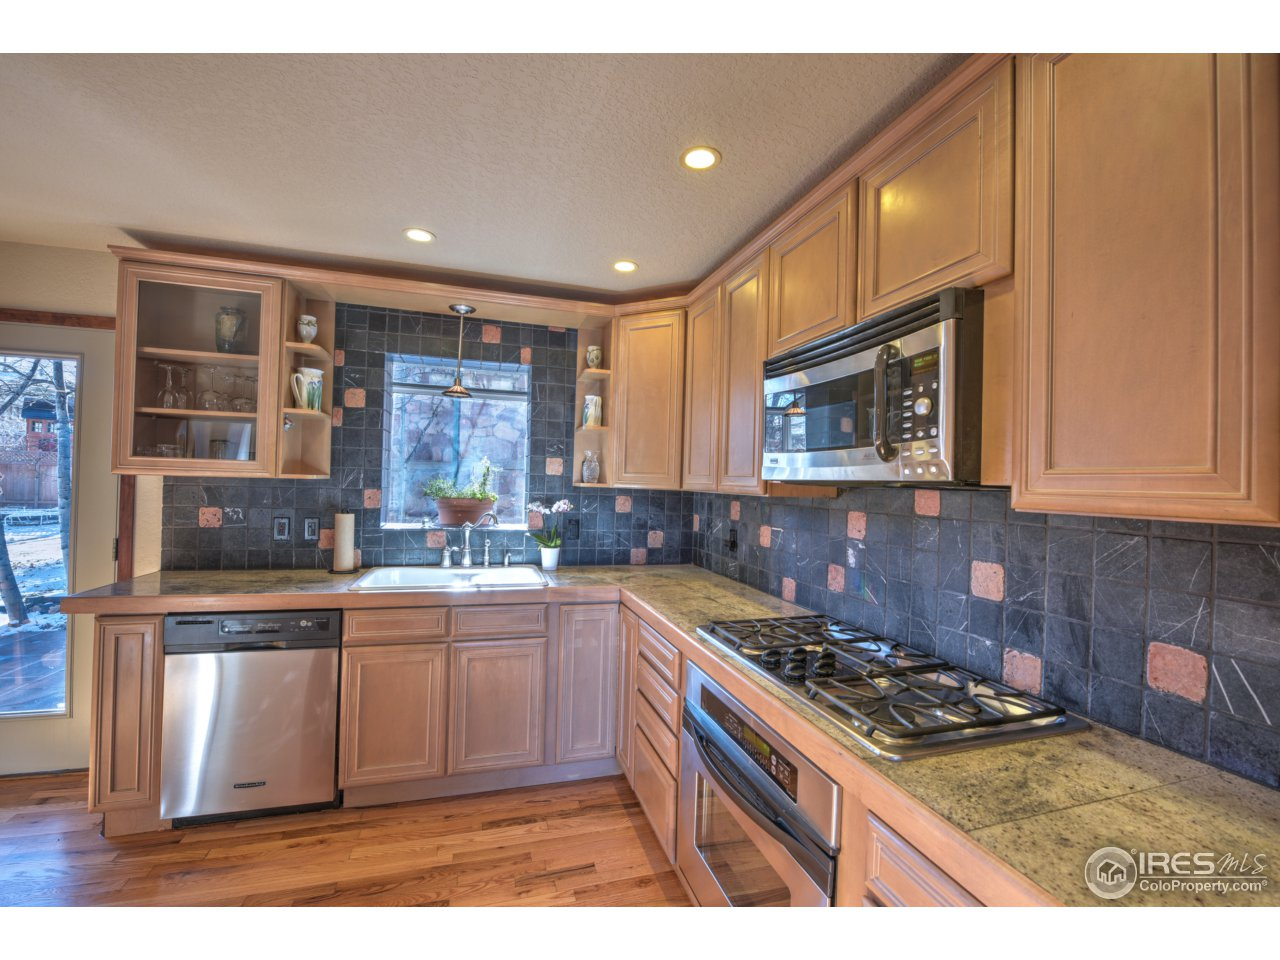 Stainless appliances!